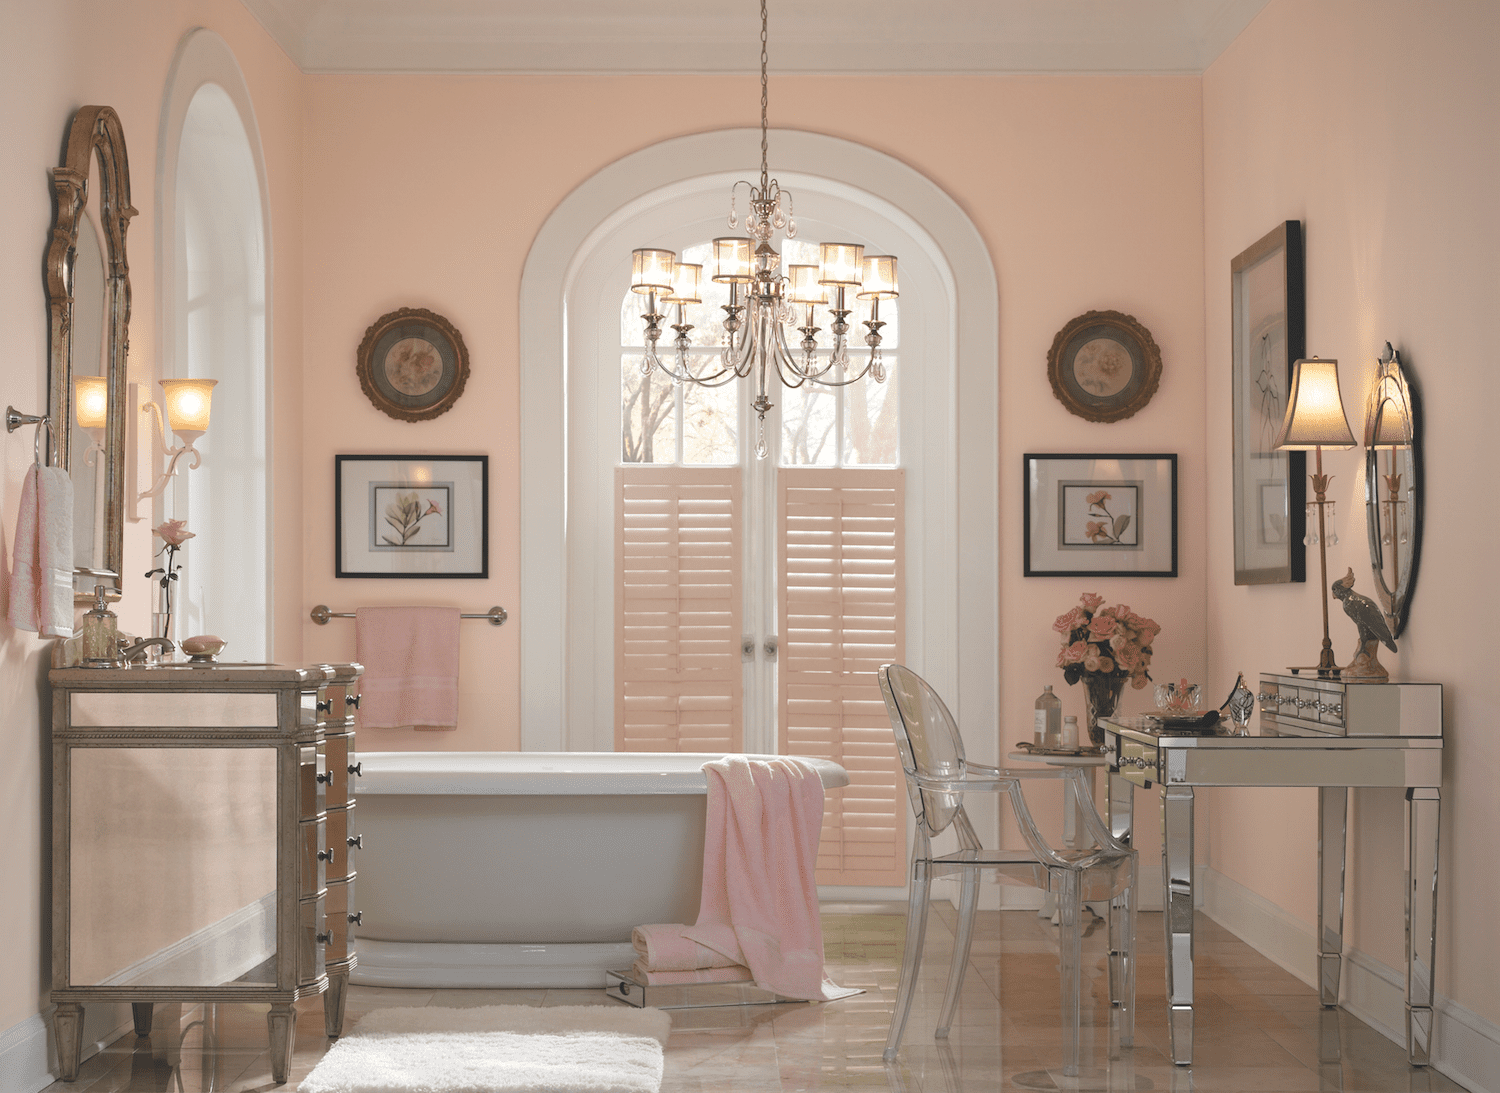 Behrs shell coral pink bathroom idea